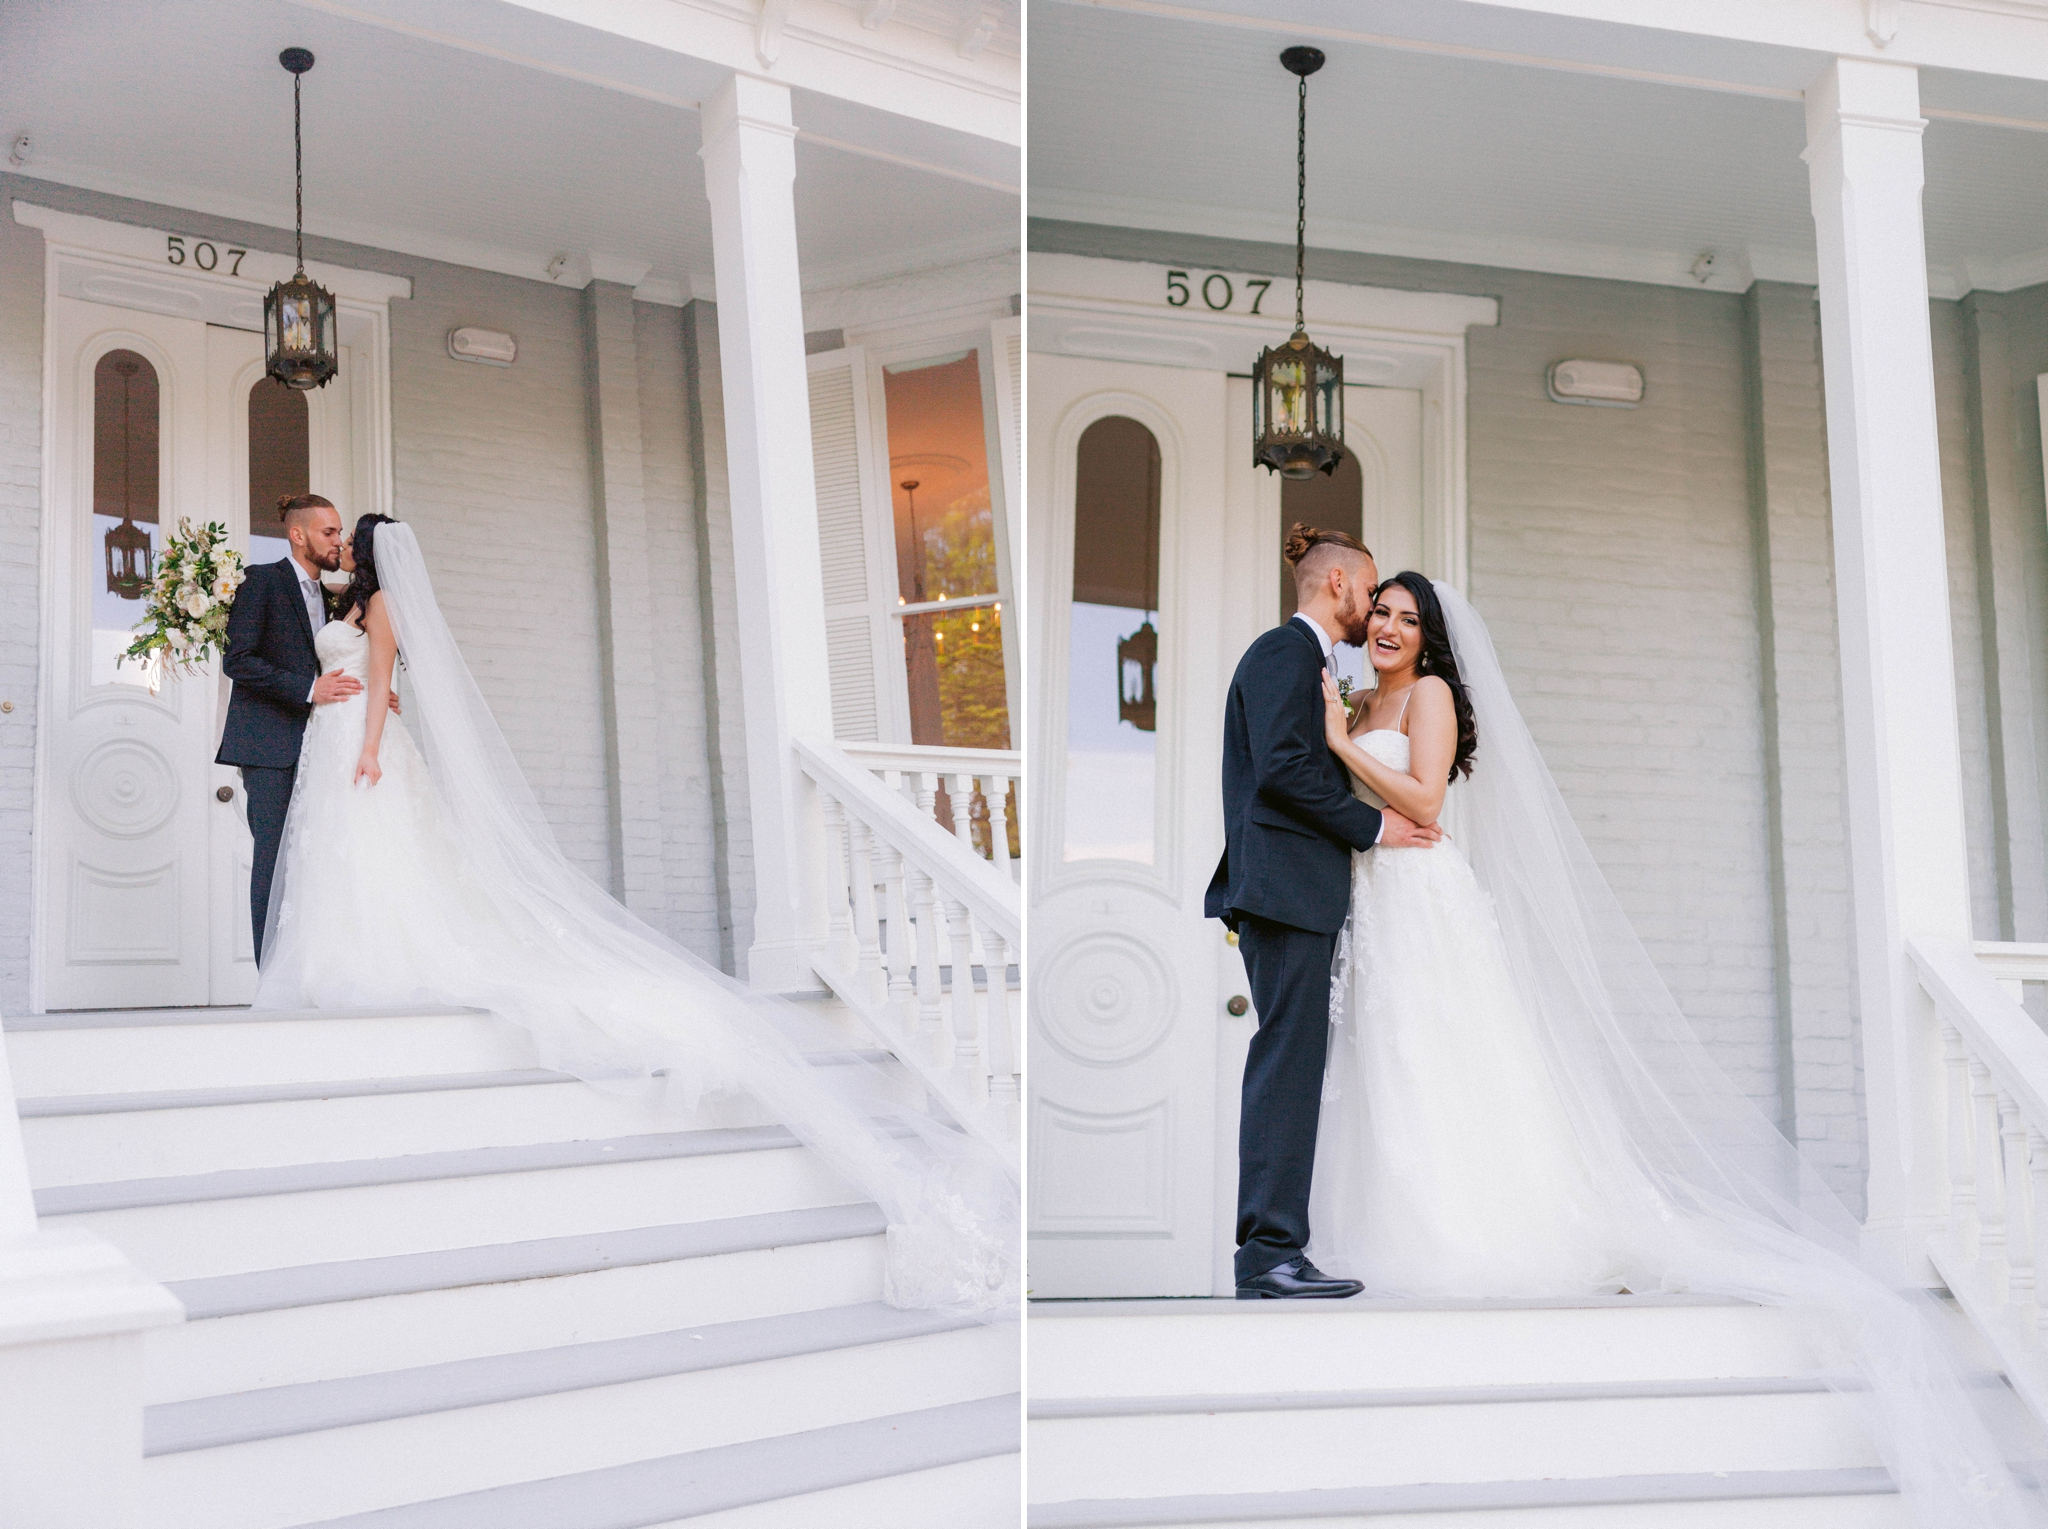 Couple Kissing - Wedding Portraits on the front porch of an  all white luxury estate mansion - Bride is wearing a Aline Ballgown by Cherish by Southern Bride with a long cathedral veil - Groom is wearing a black suit by Generation Tux and has a man bun - Honolulu Oahu Hawaii Wedding Photographer - Johanna Dye Photography